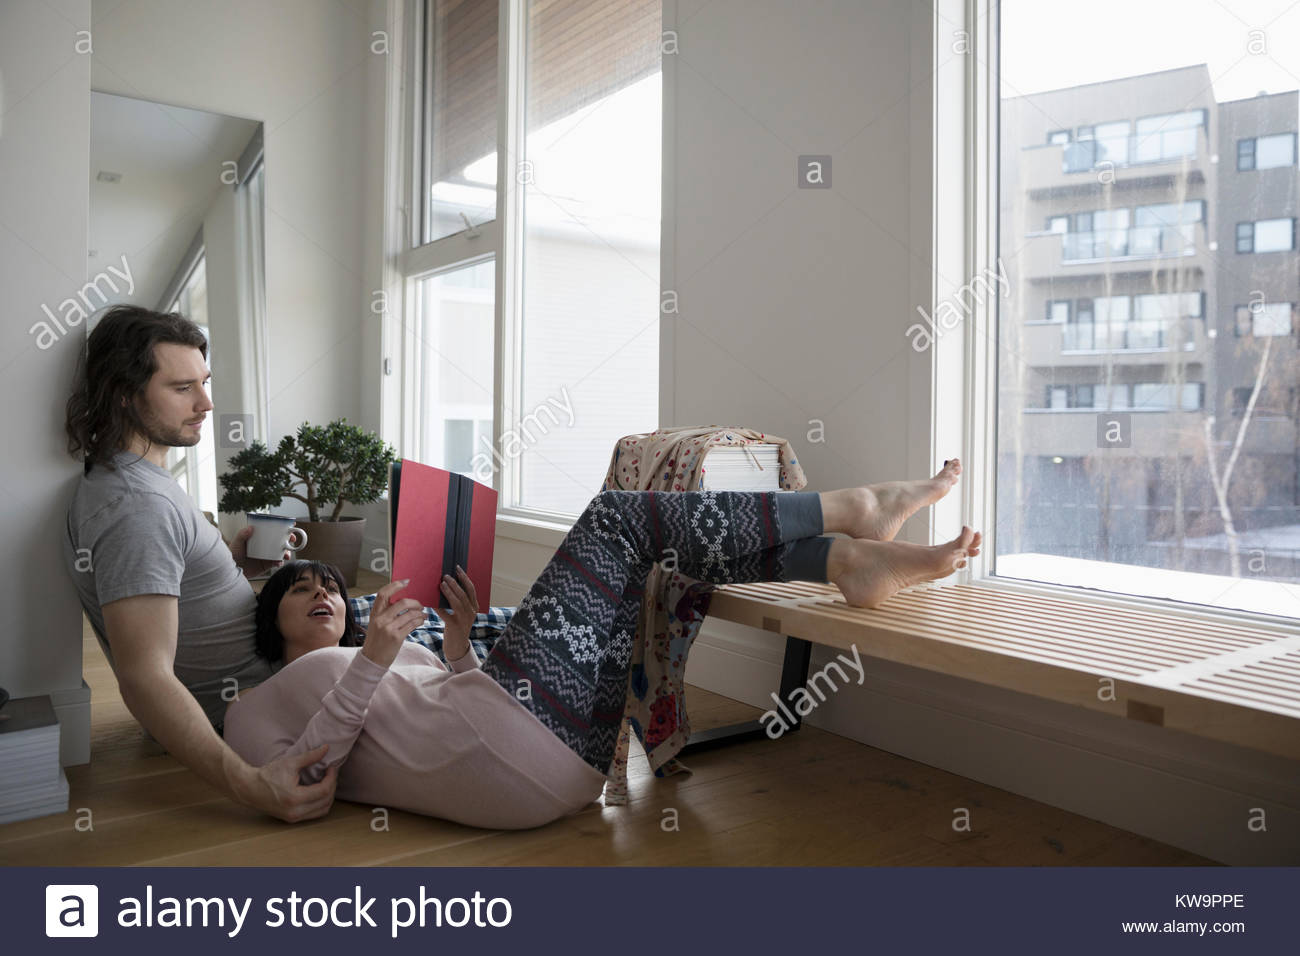 Affectionate couple in pajamas relaxing,drinking coffee and reading book on urban apartment floor - Stock Image